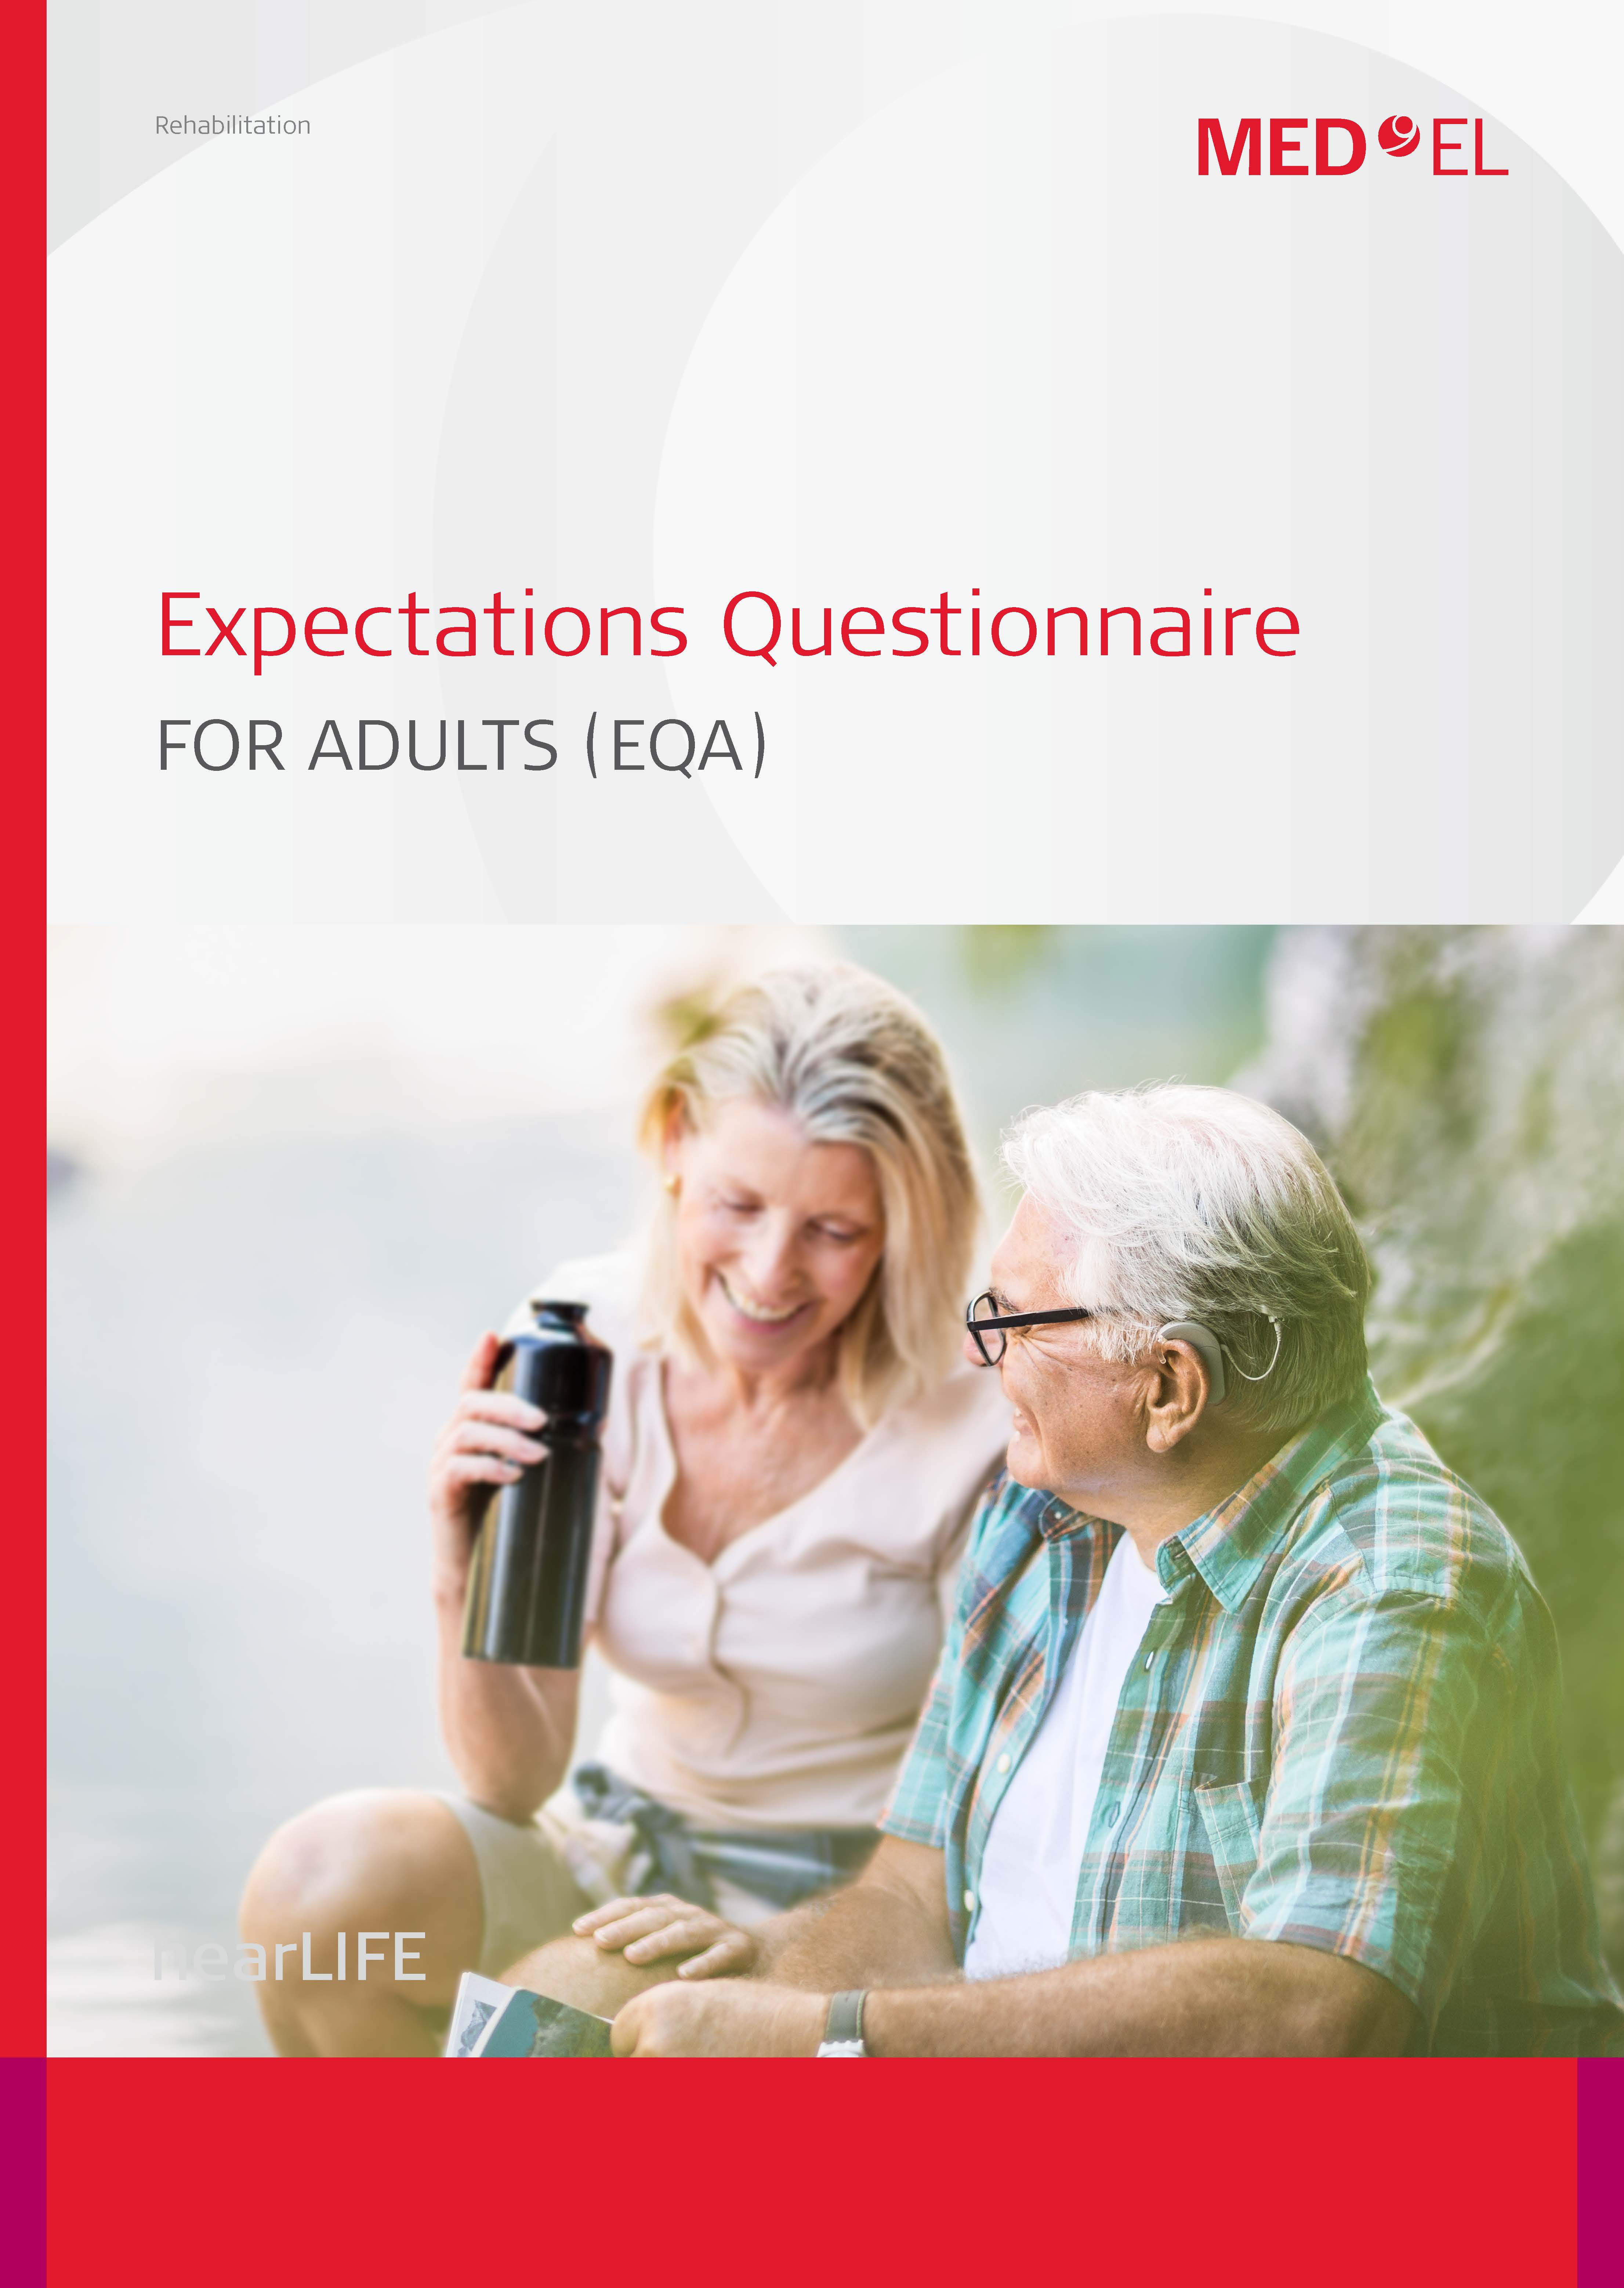 Expectations Questionnaire for Adults